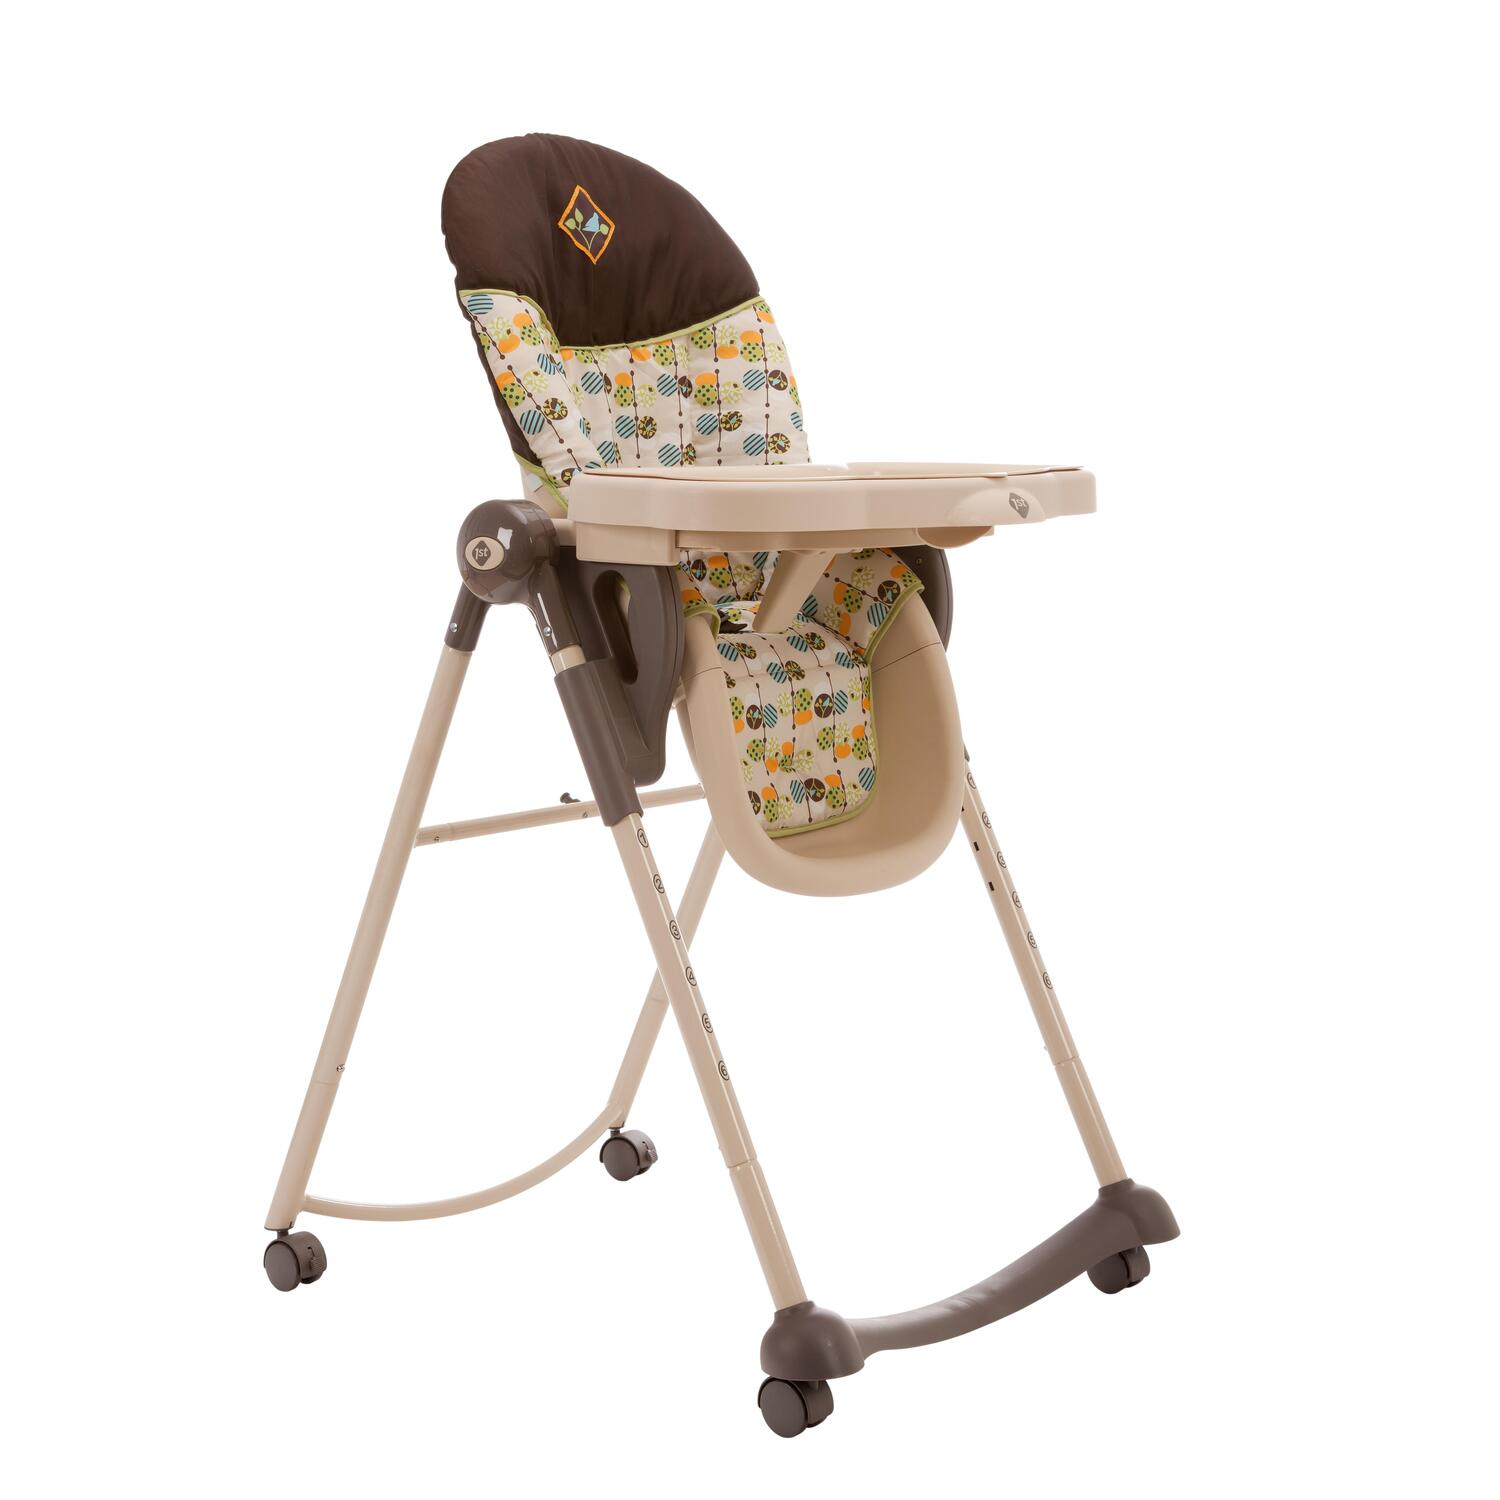 table high chair reviews transport chairs lightweight safety 1st adap droplet 98 04